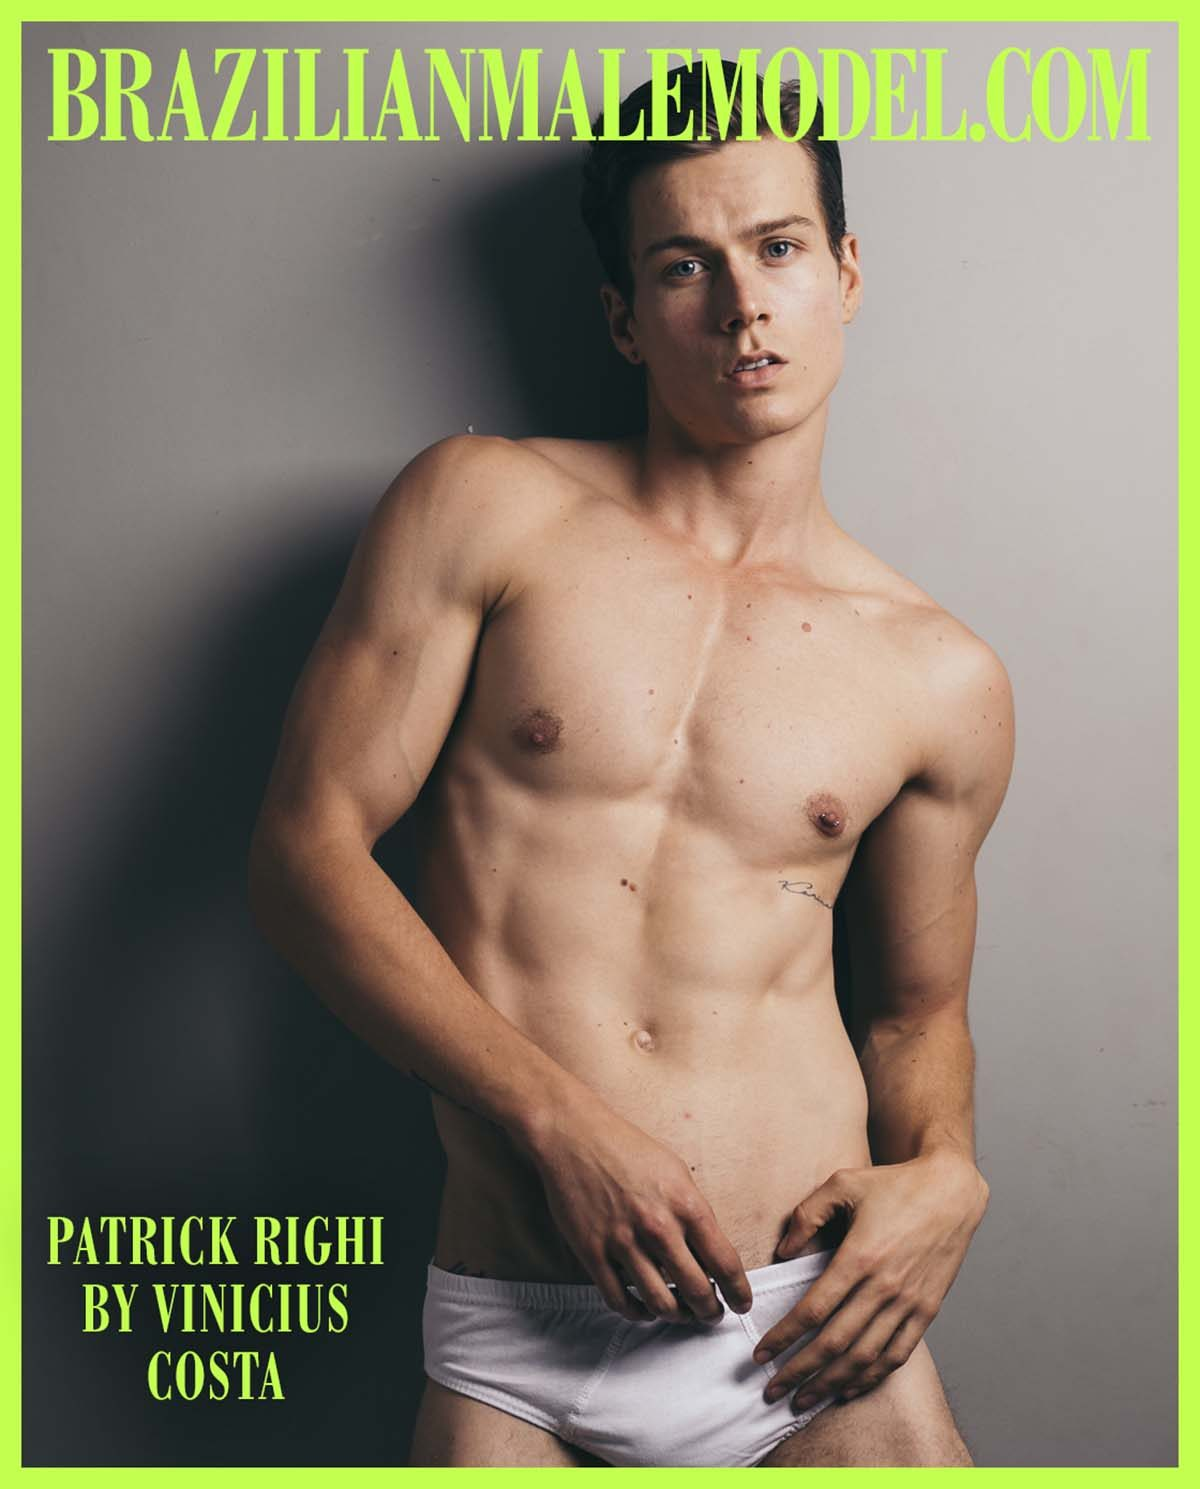 Patrick Righi by Vinicius Costa